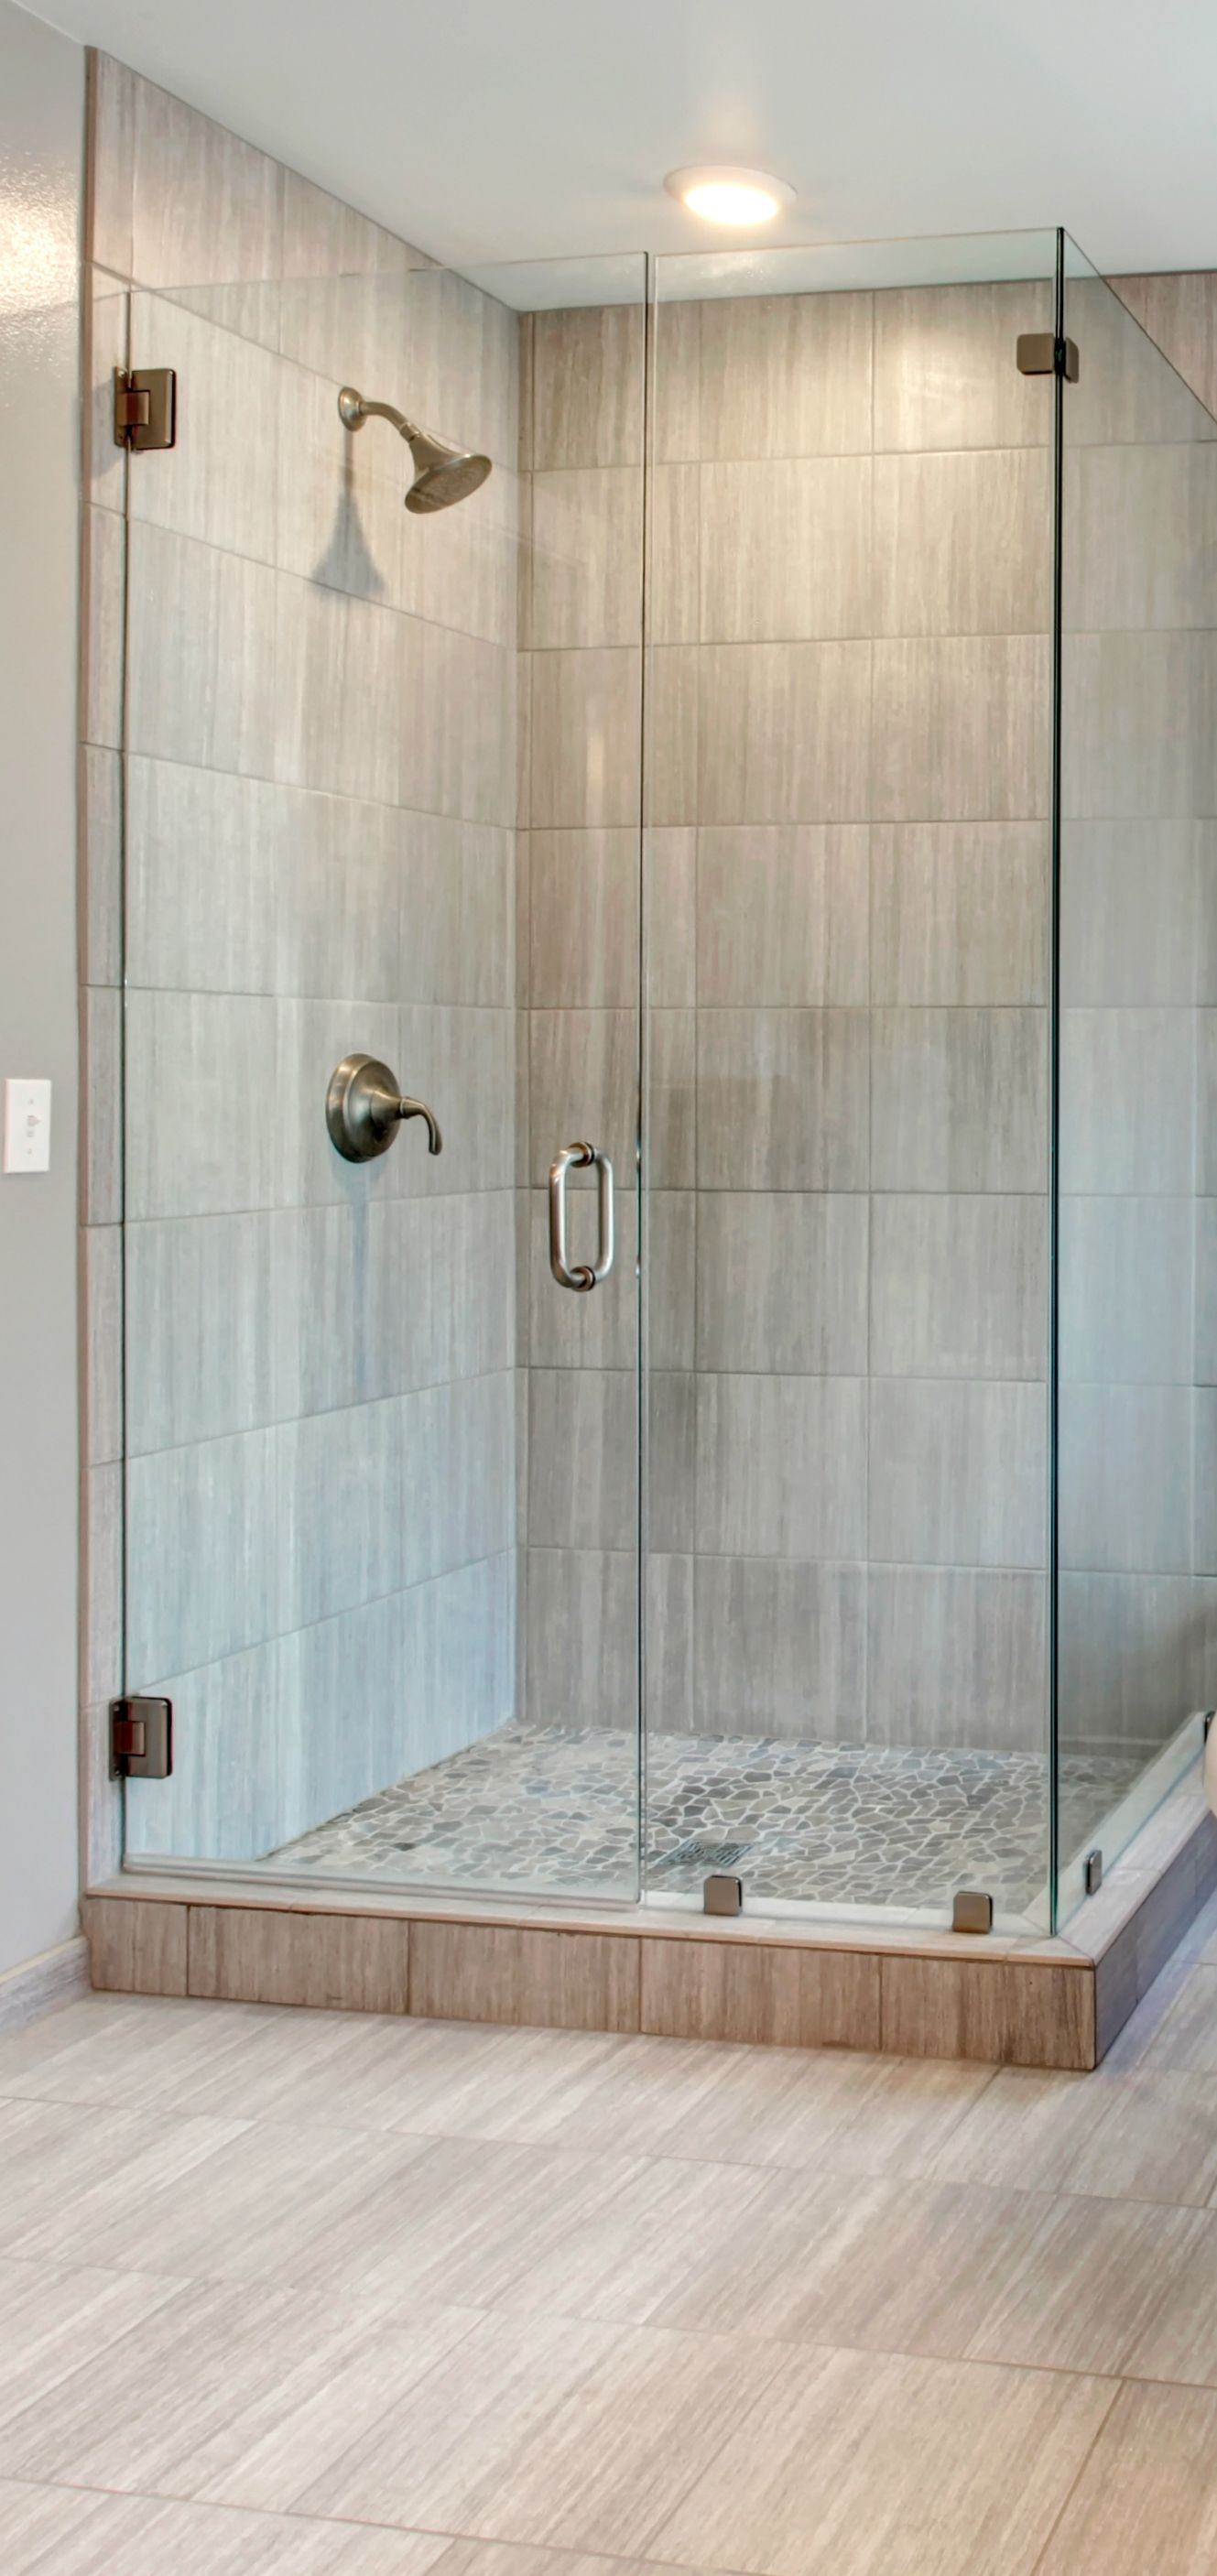 Showers Corner Walk In Shower Ideas For Simple Small Bathroom With Natural Stone Shower Pans Decor